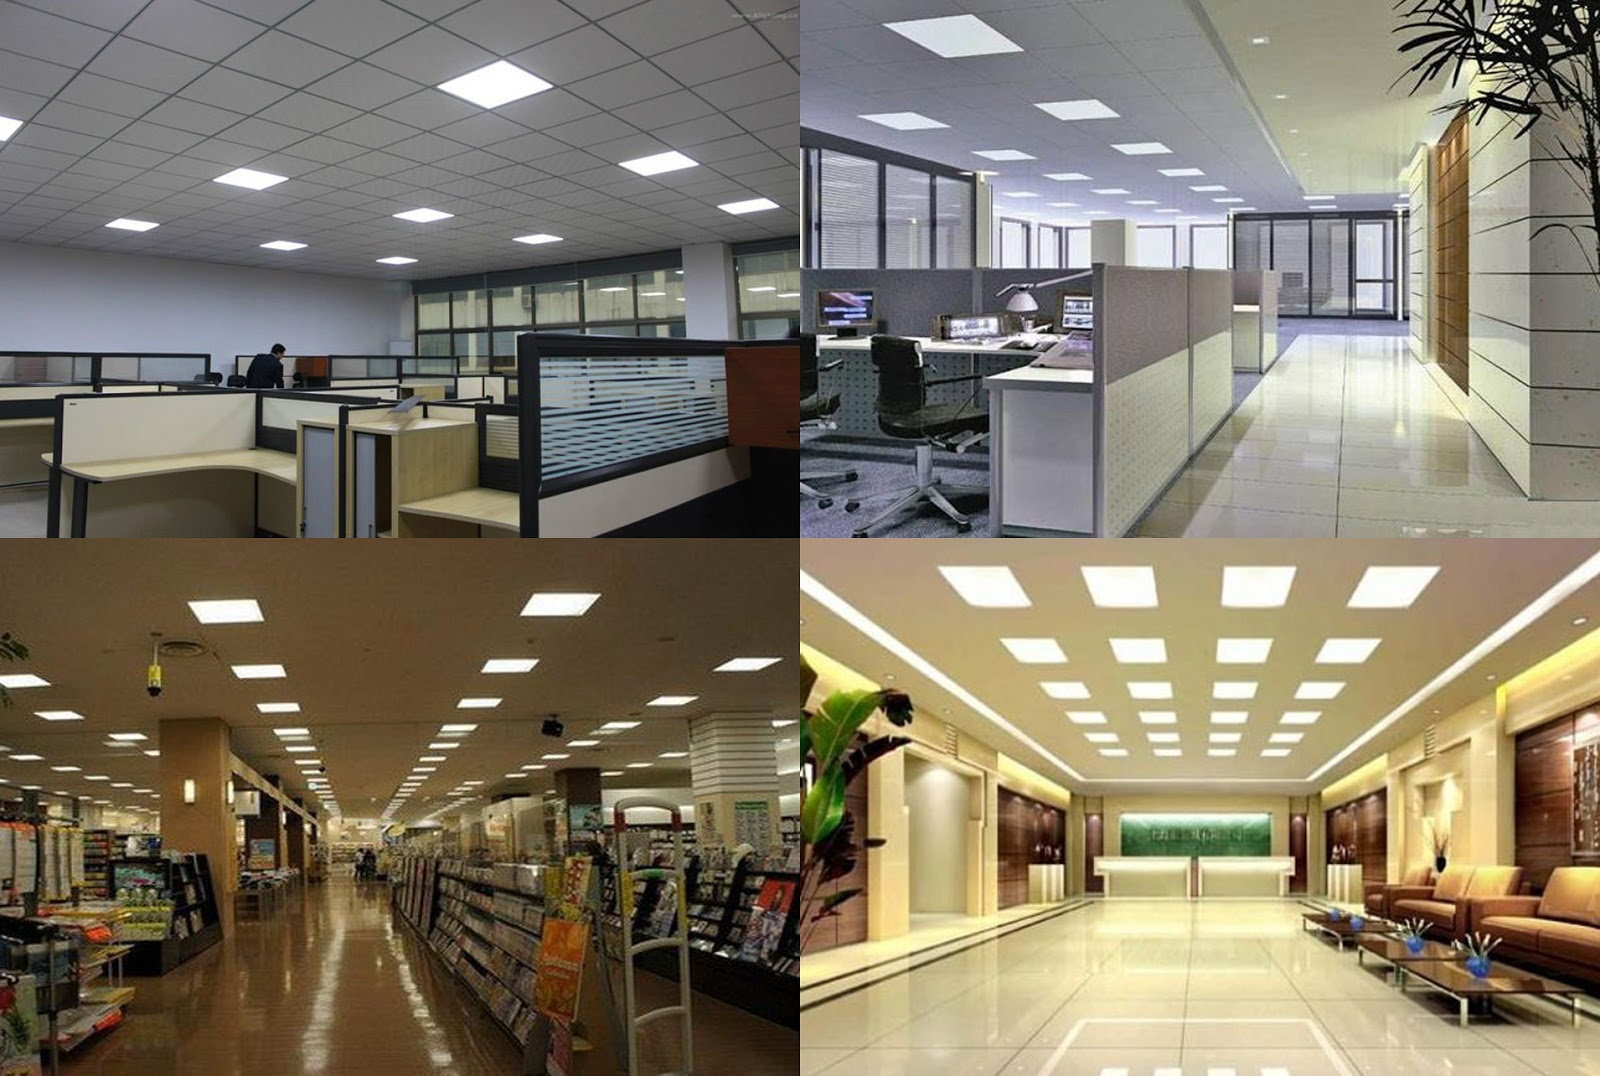 How green is is led lighting guardian services plus qualified led lighting produces virtually no heat and provides optimal light color for any environment from parking lots to high end show rooms mozeypictures Image collections